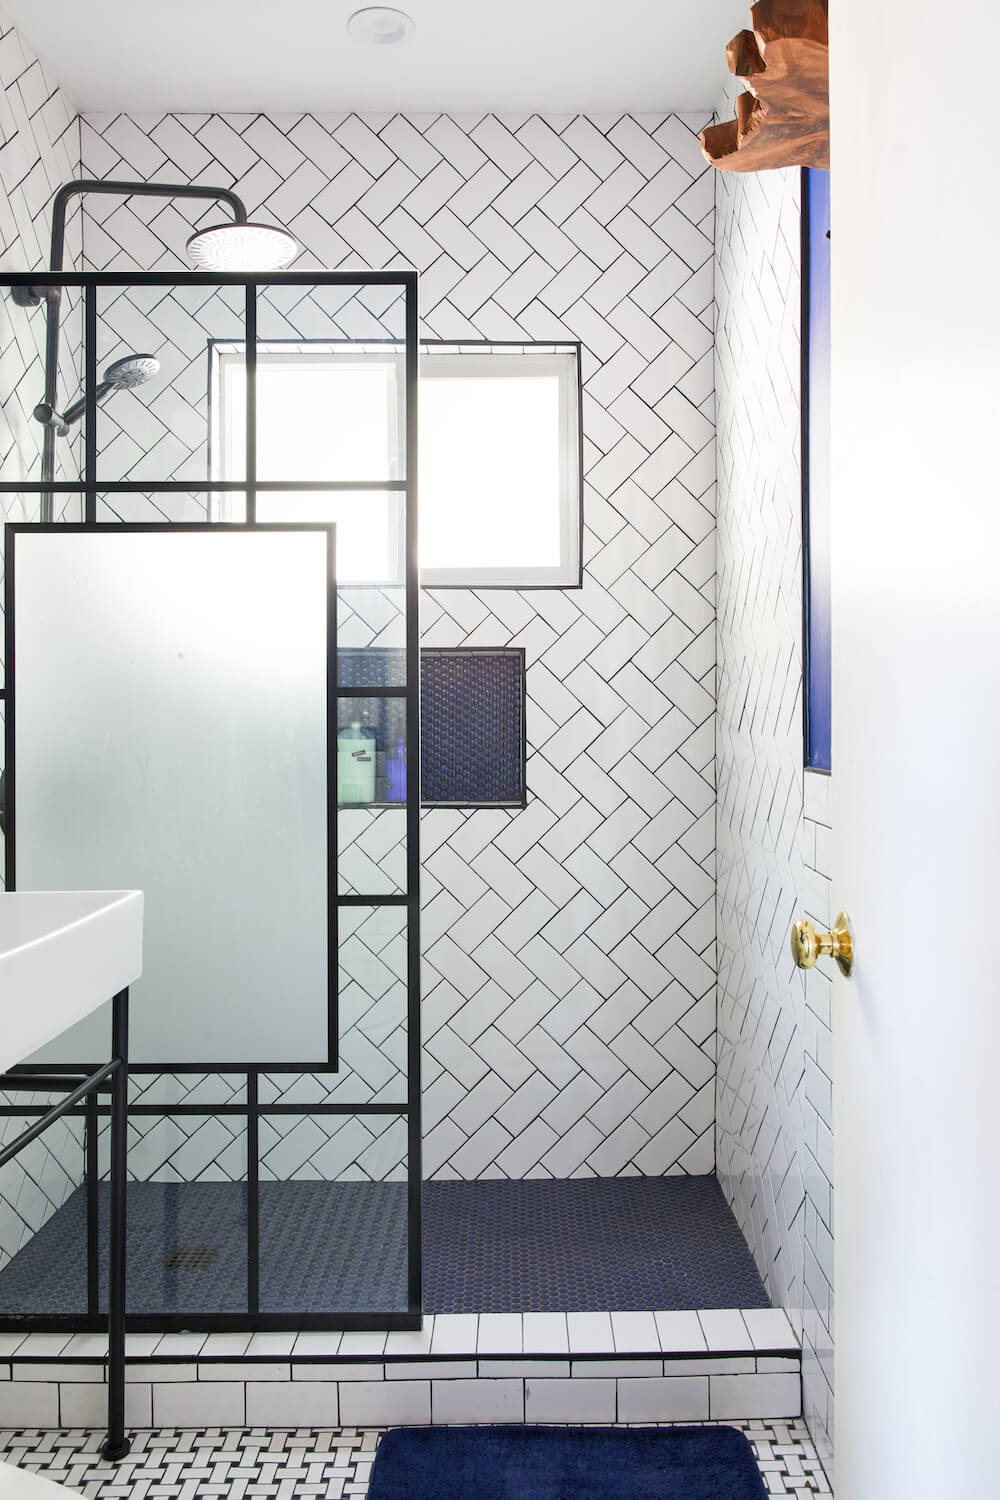 Image of a gut remodel bathroom with walk-in shower and herringbone shower